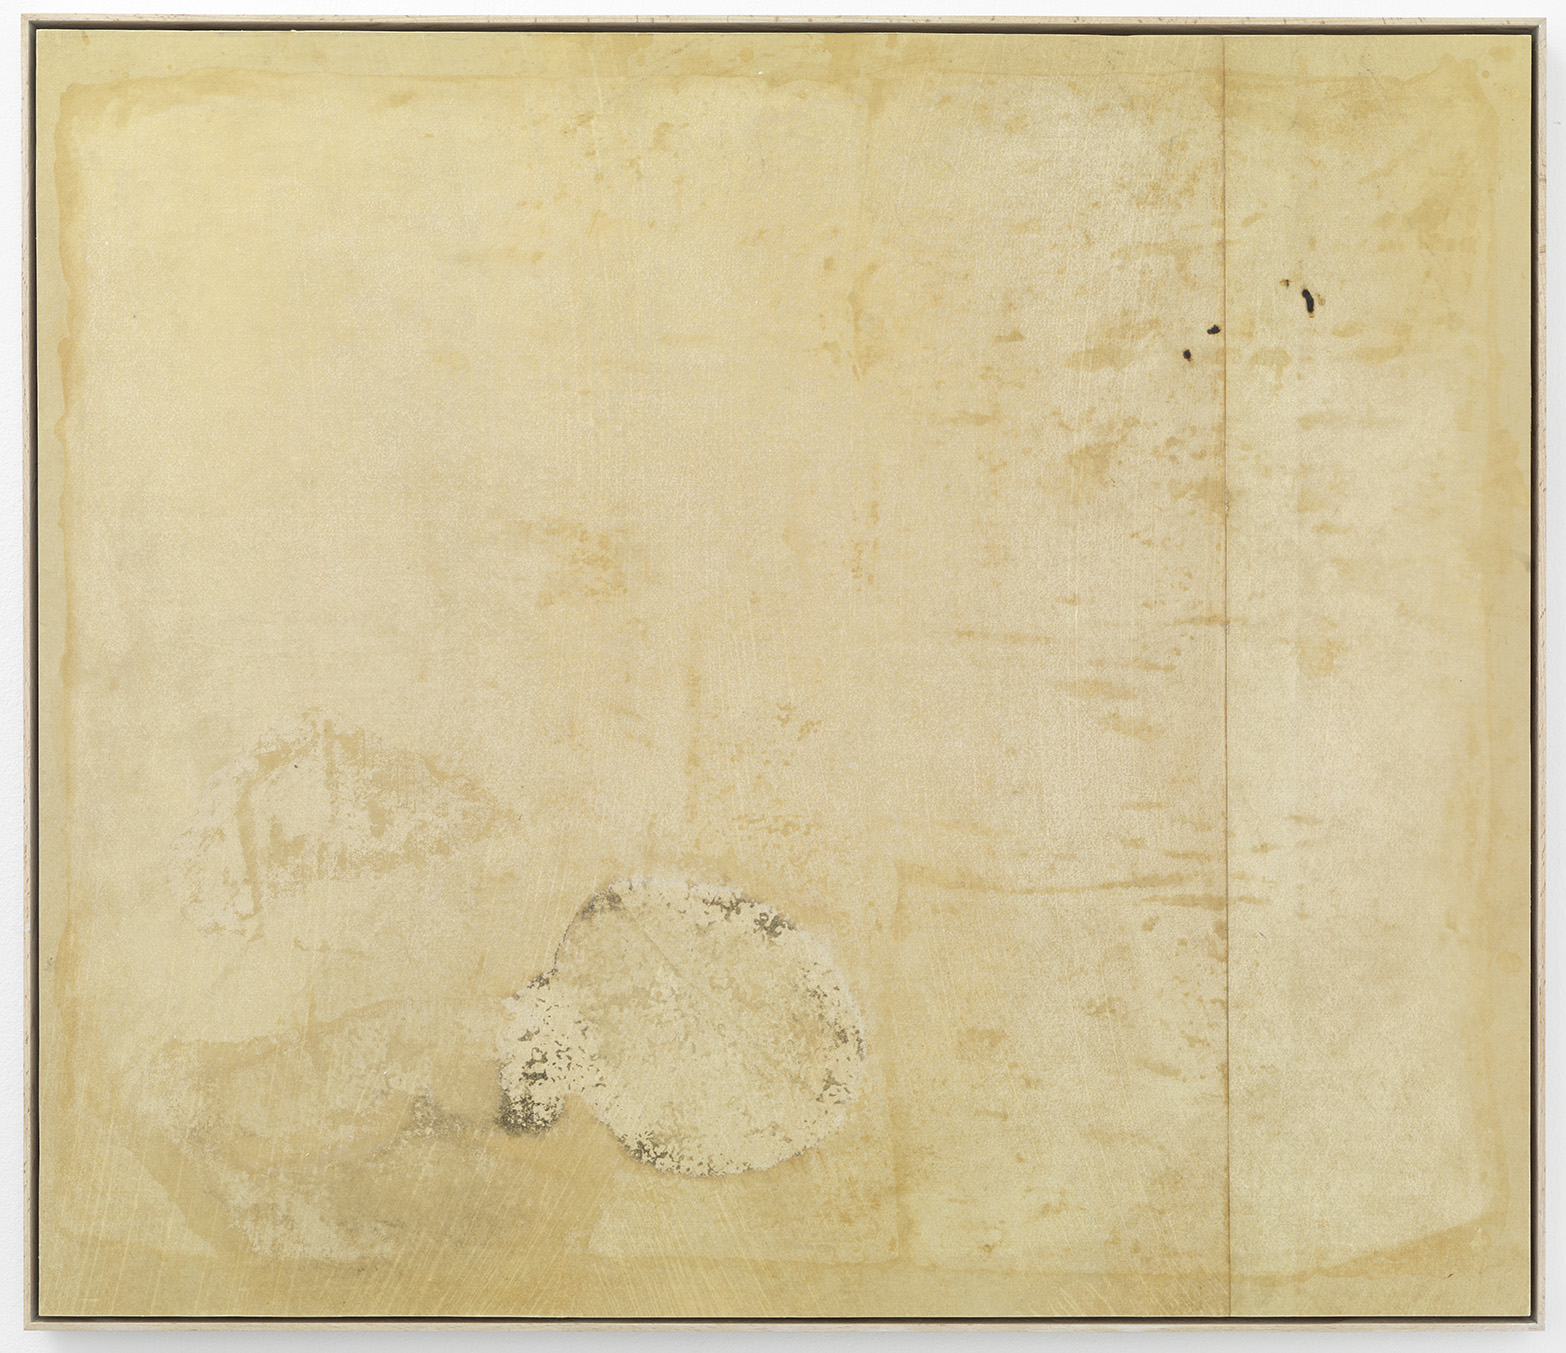 Jeewi Lee - Reinigungsbild Nr 11 – 2015, 123,5 x 155,5 cm, cleaned/bleached korean traditional paper floor with traces and stains